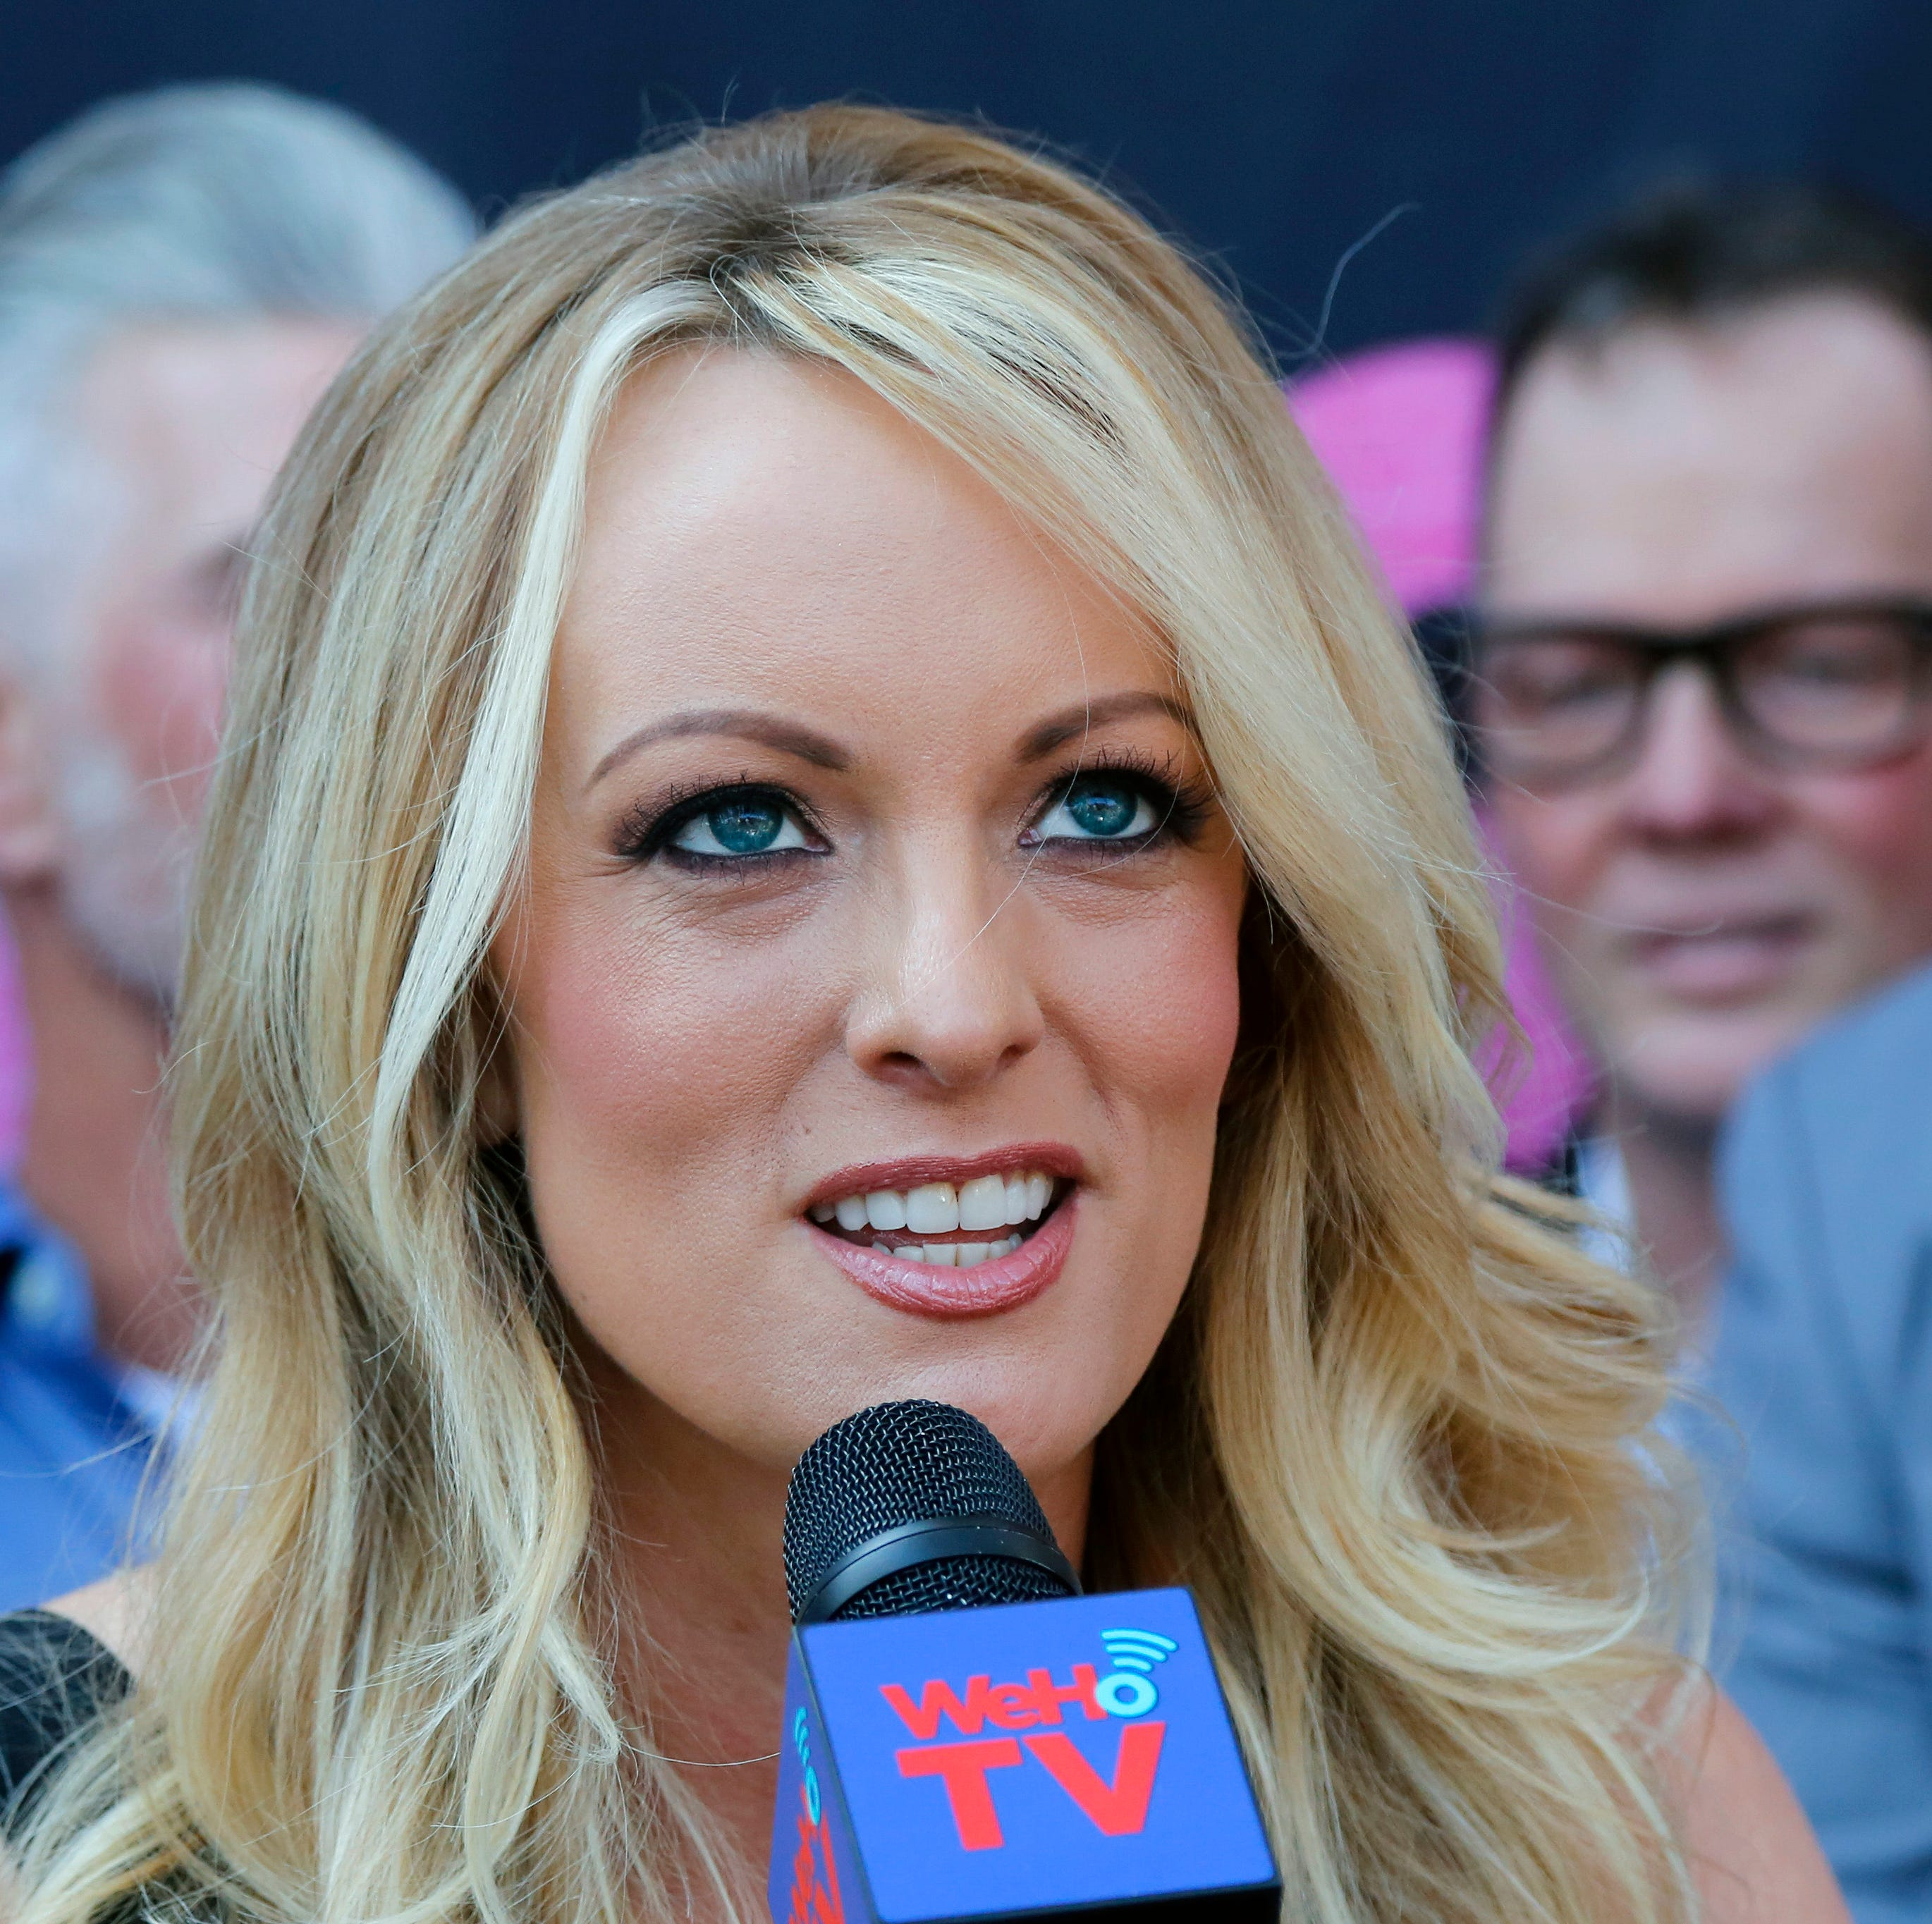 President's feud with porn star: Stormy Daniels to visit Greenville again for Election Day